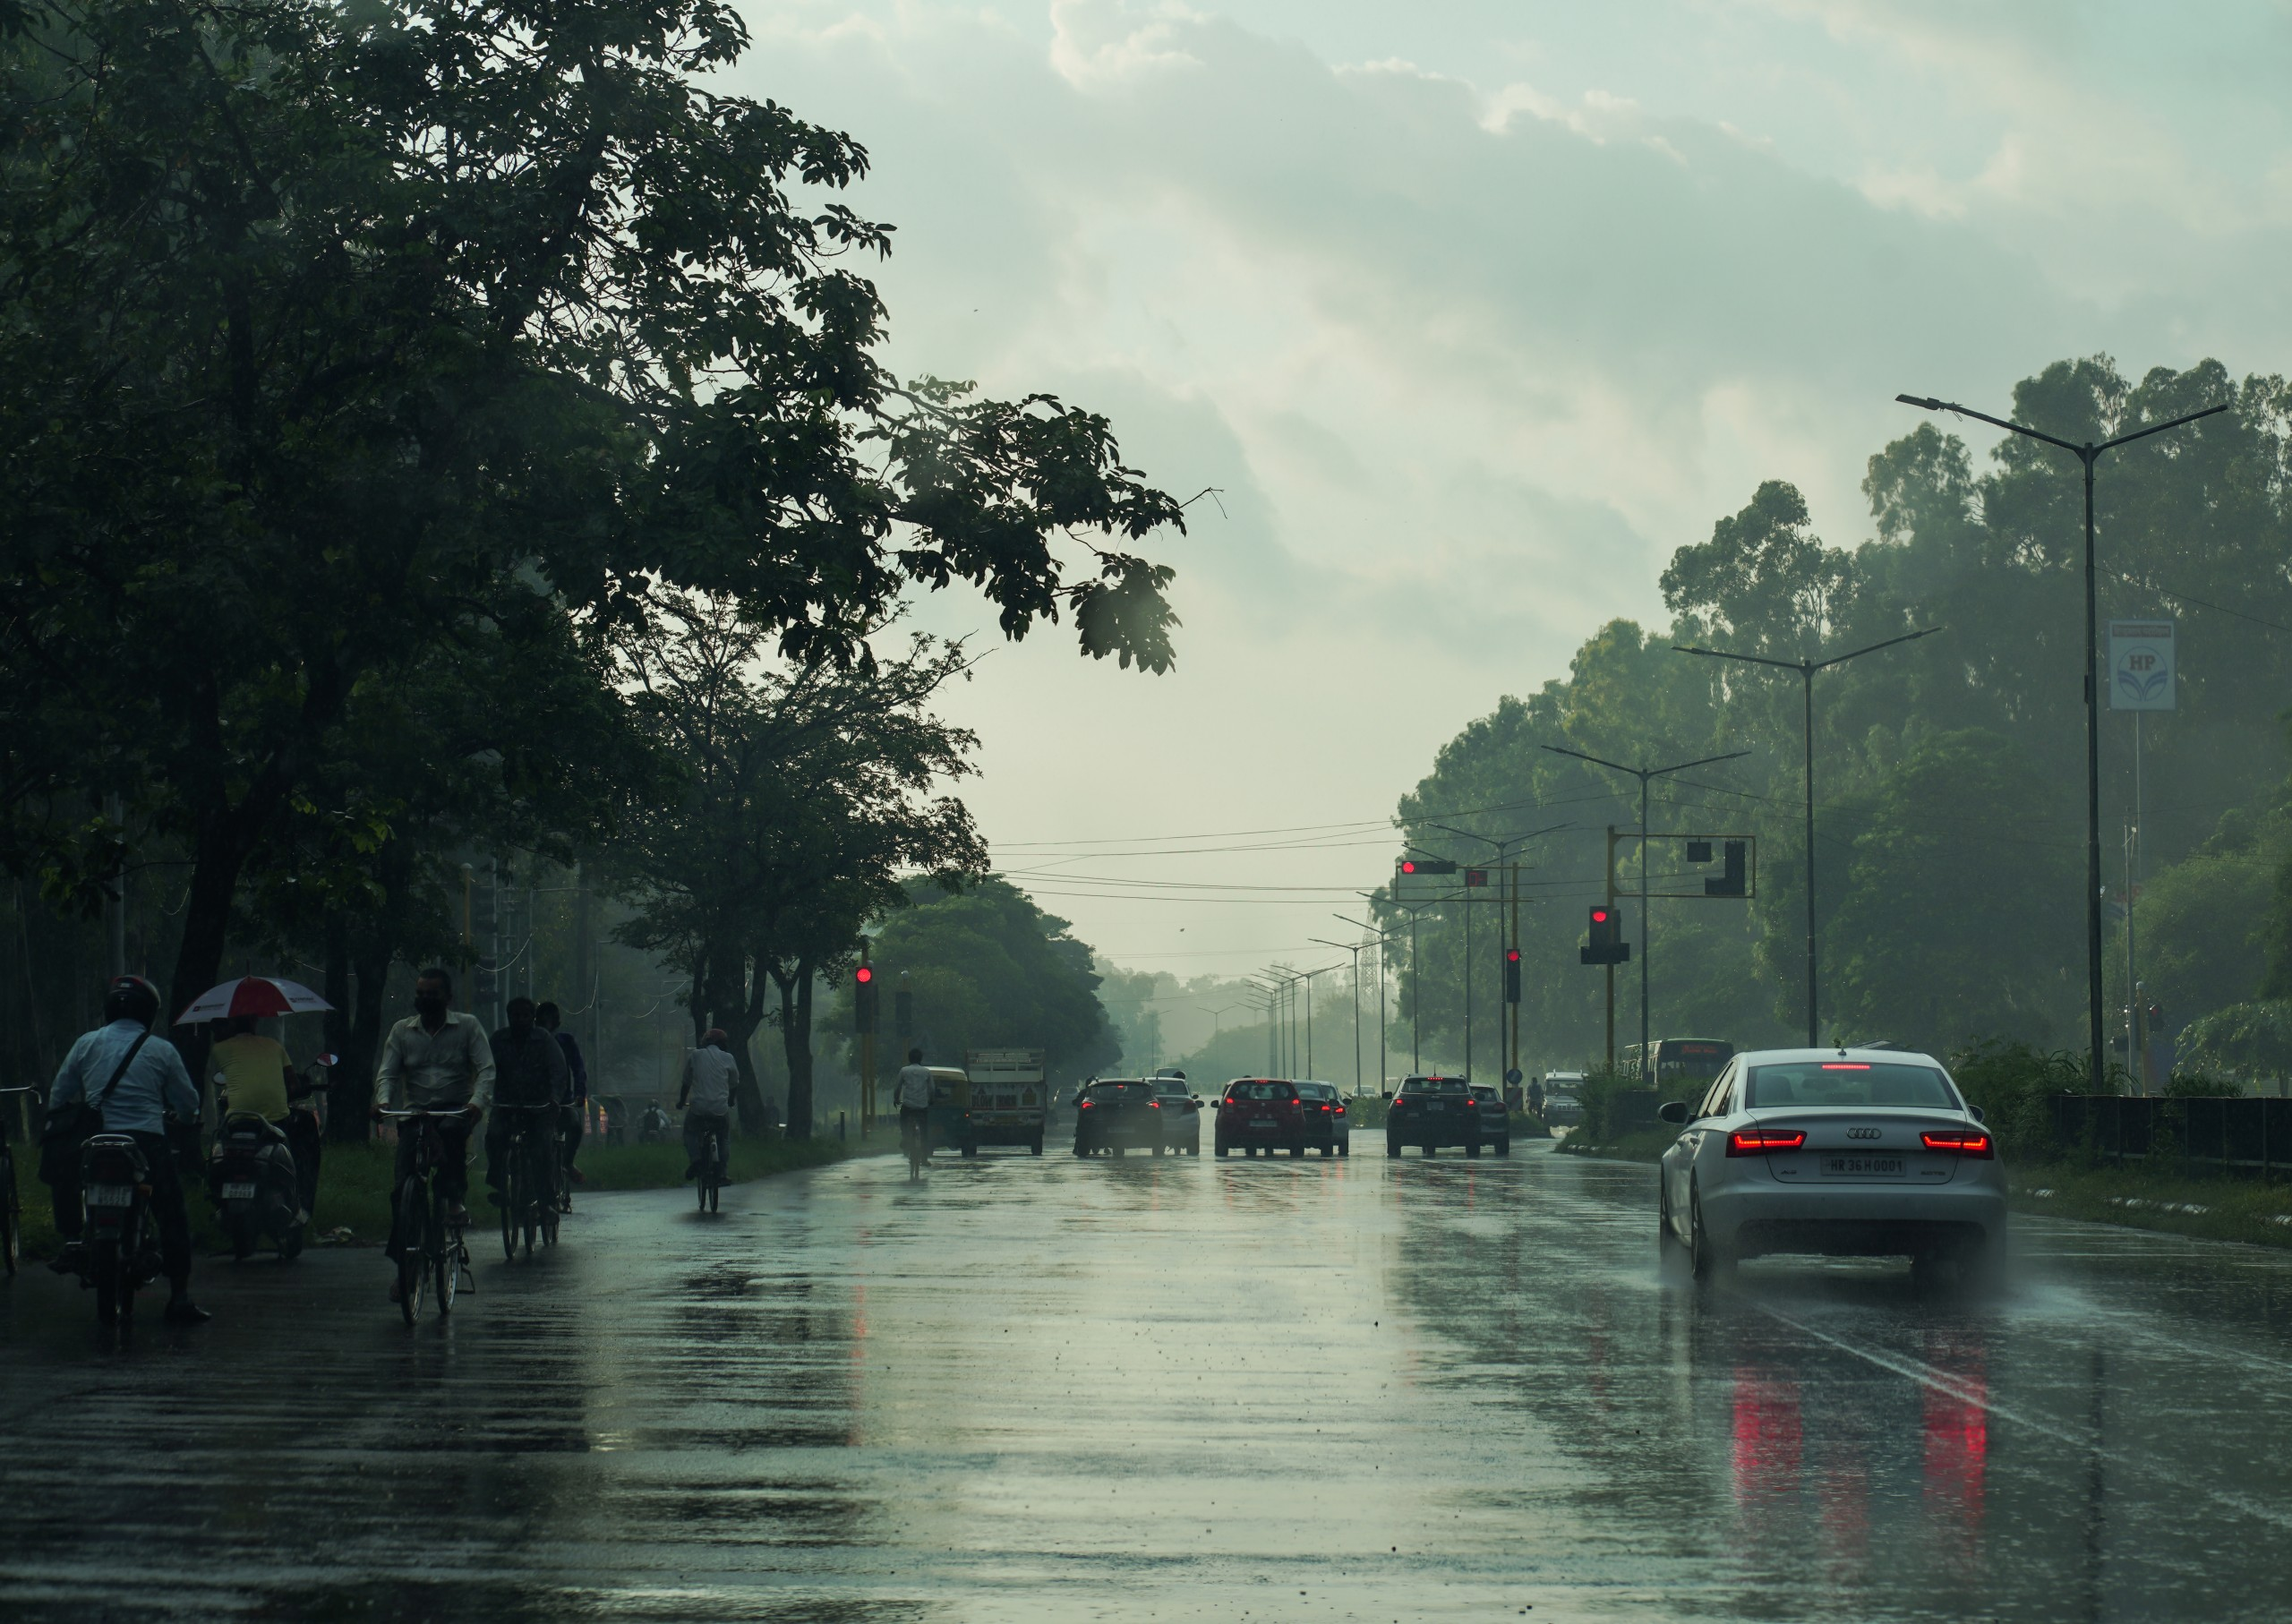 Photo during rain at Chandigarh